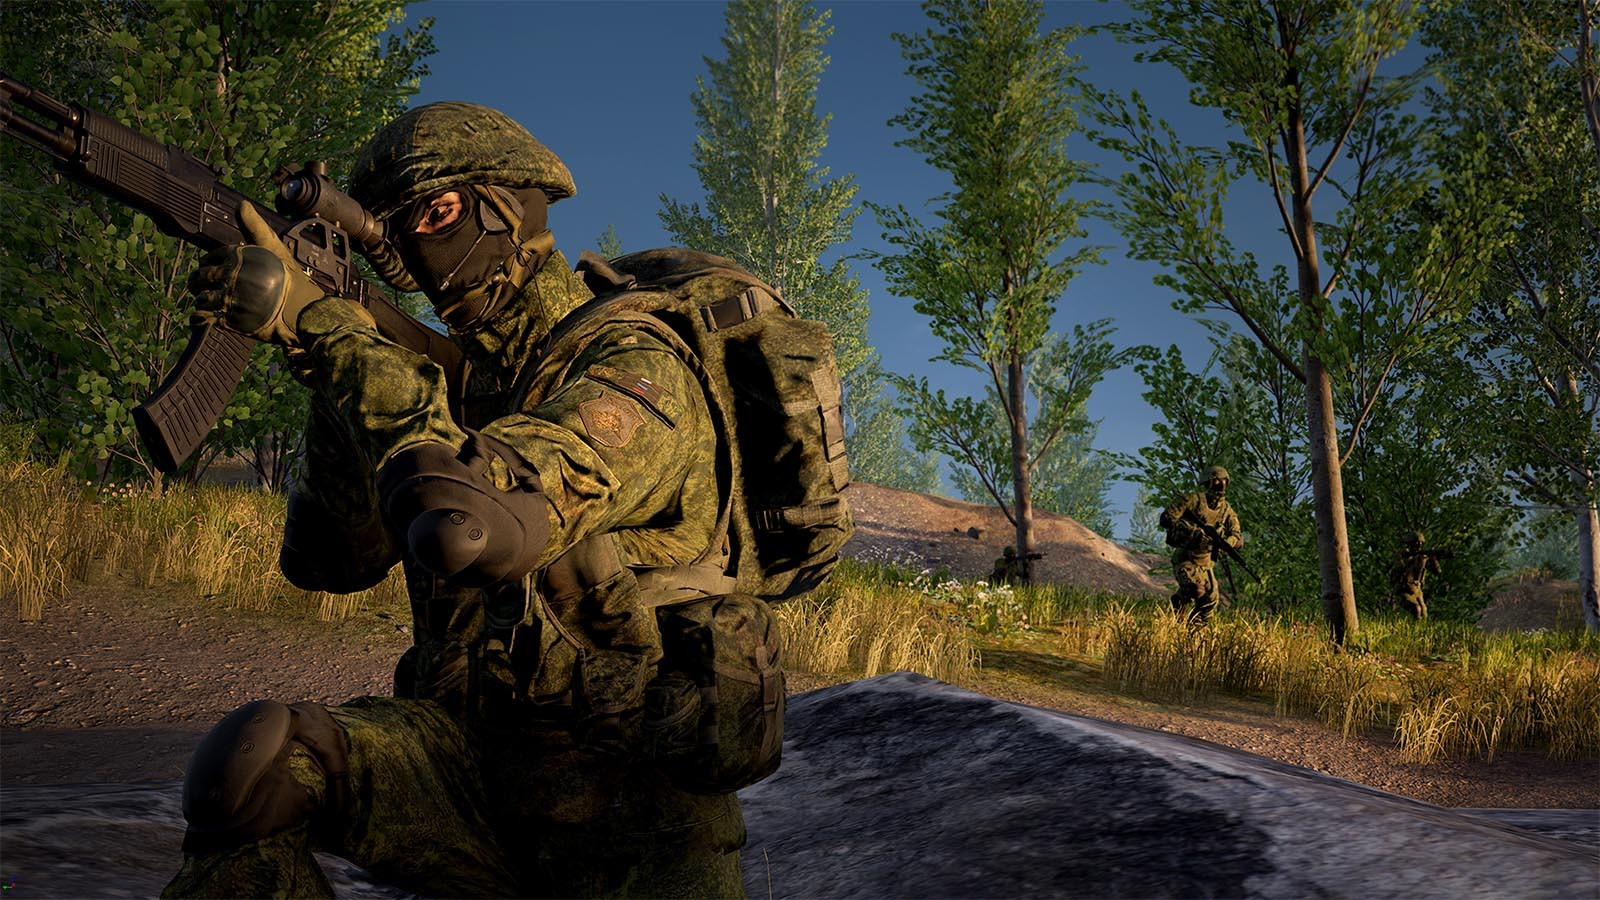 Squad [Steam CD Key] for PC - Buy now